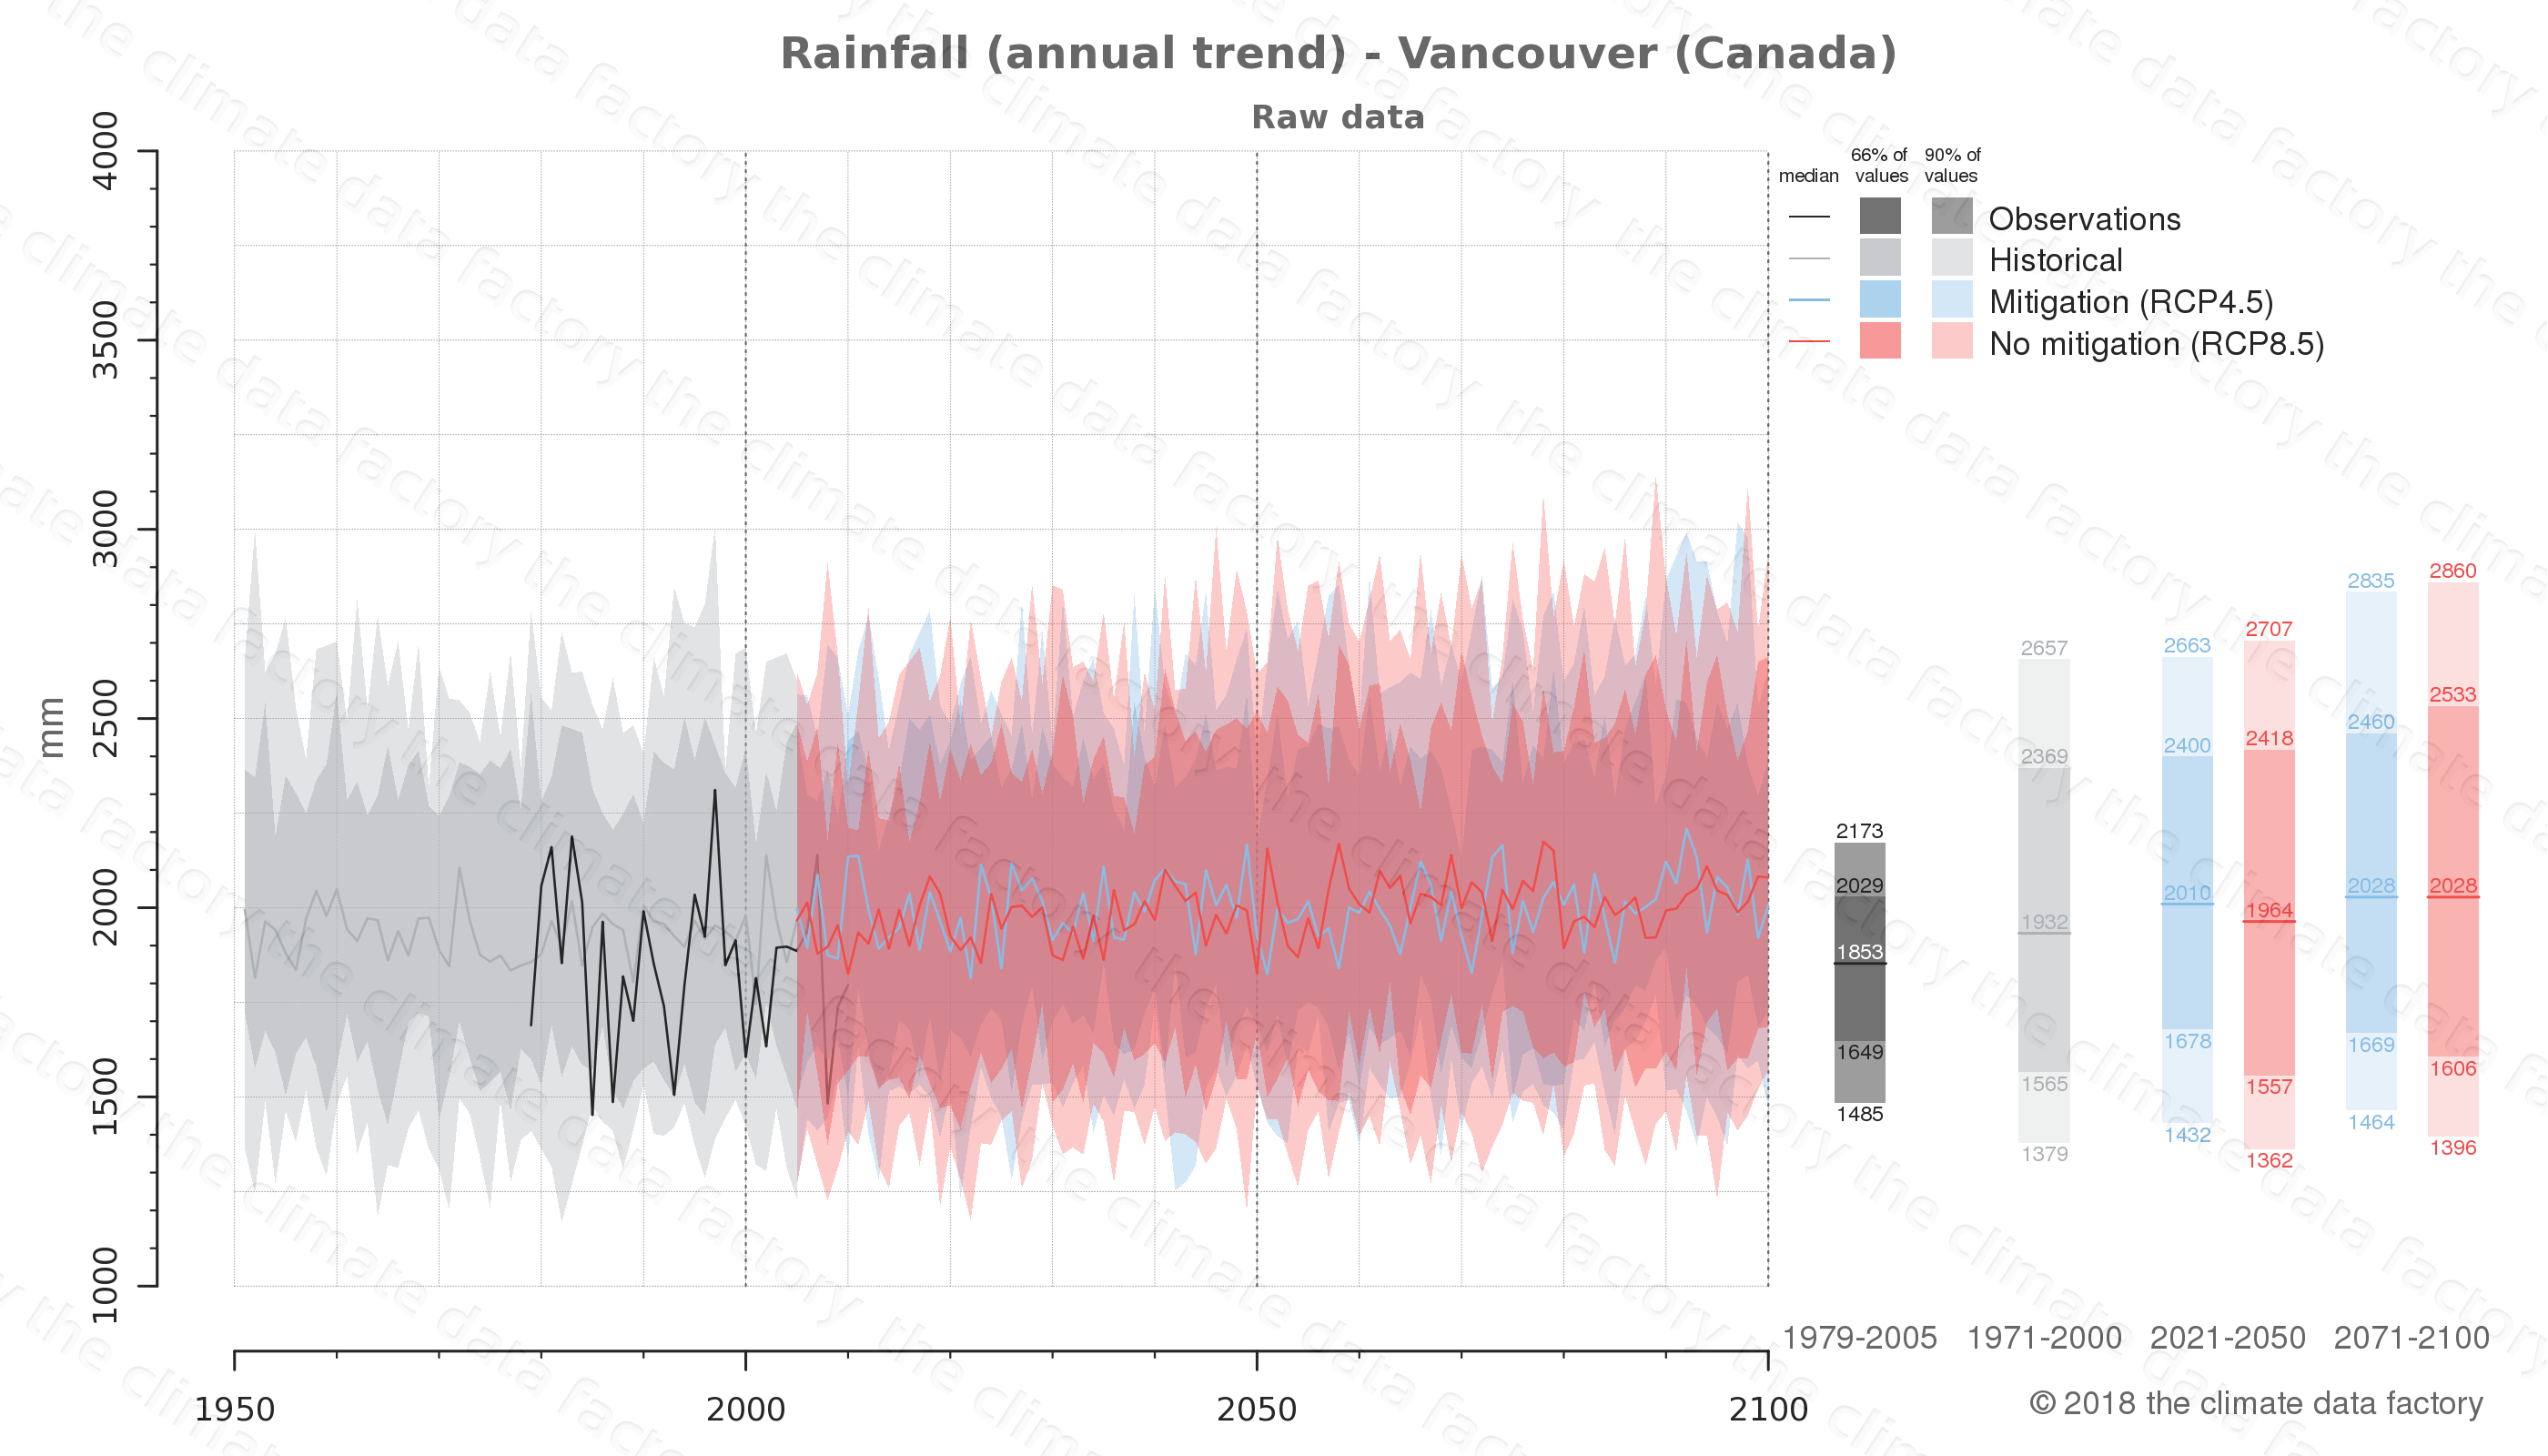 climate change data policy adaptation climate graph city data rainfall vancouver canada